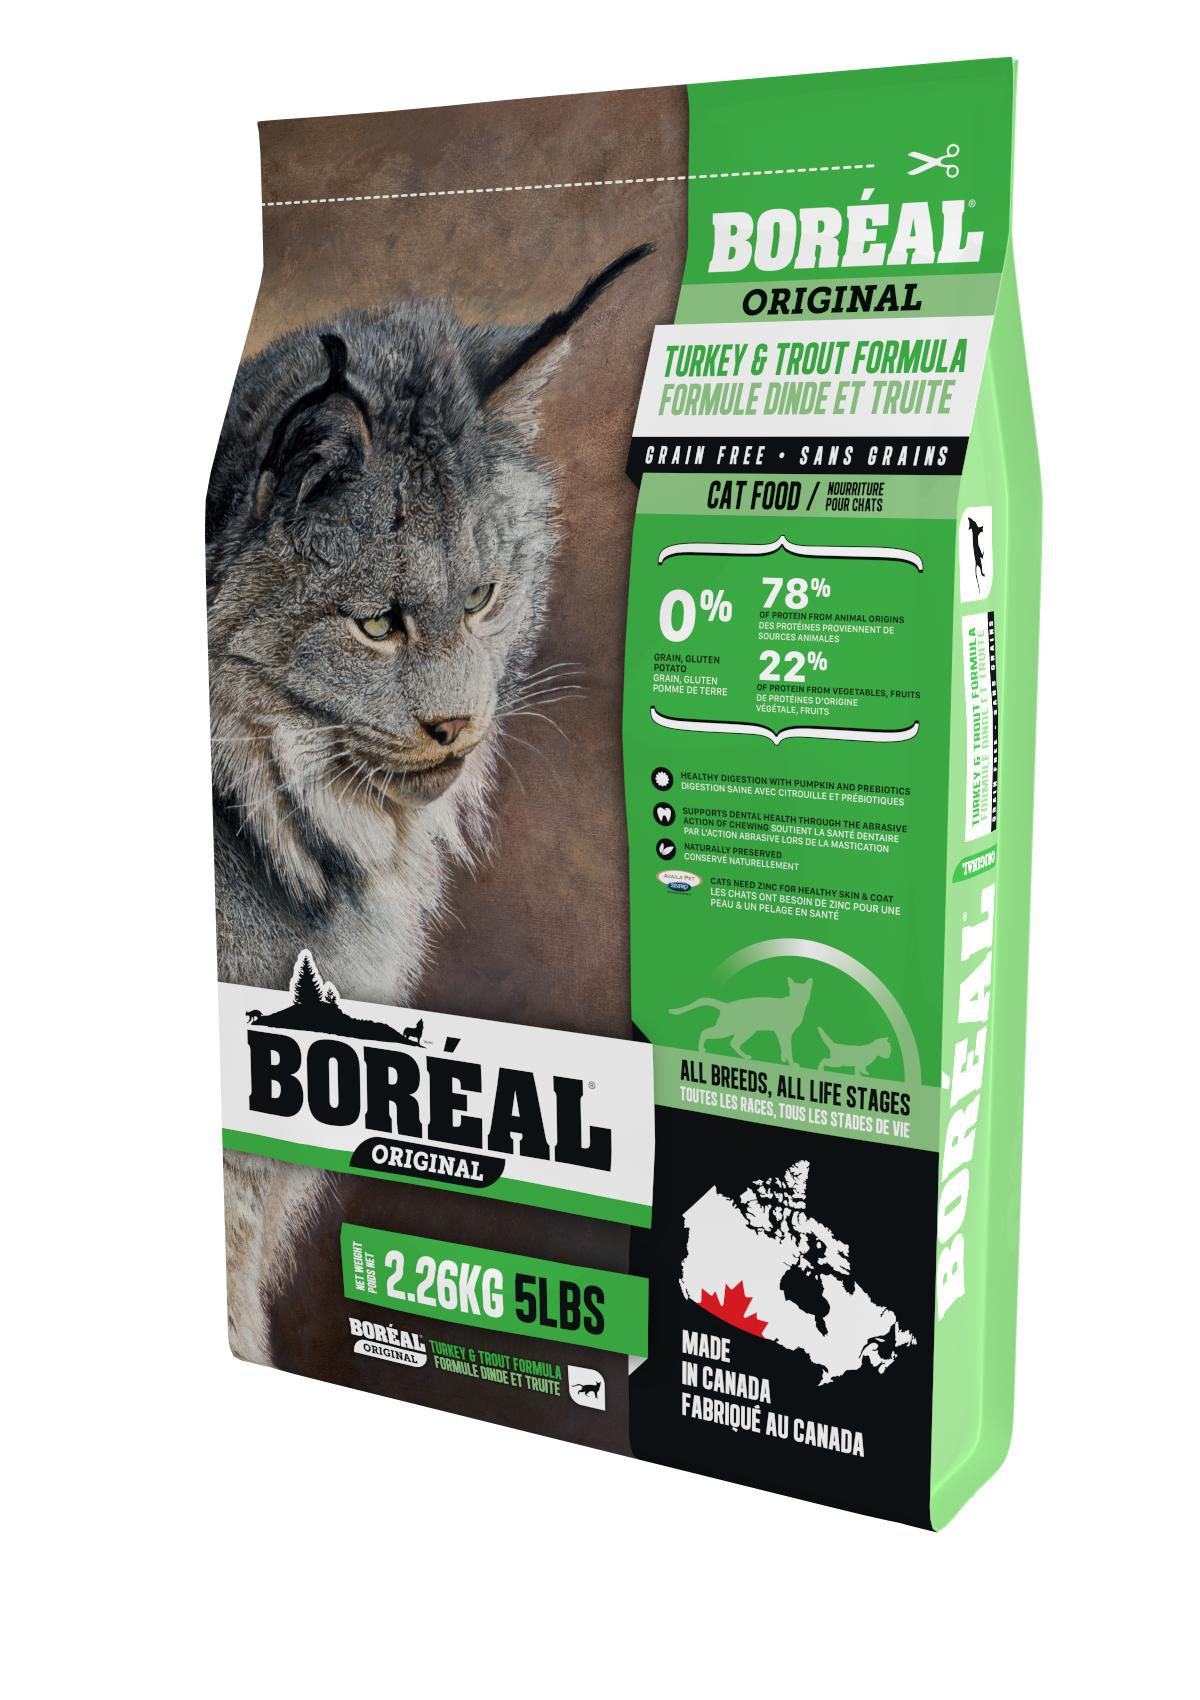 Boreal Original, All Breeds, Turkey and Trout Formula Dry Cat Food, 2.26kg